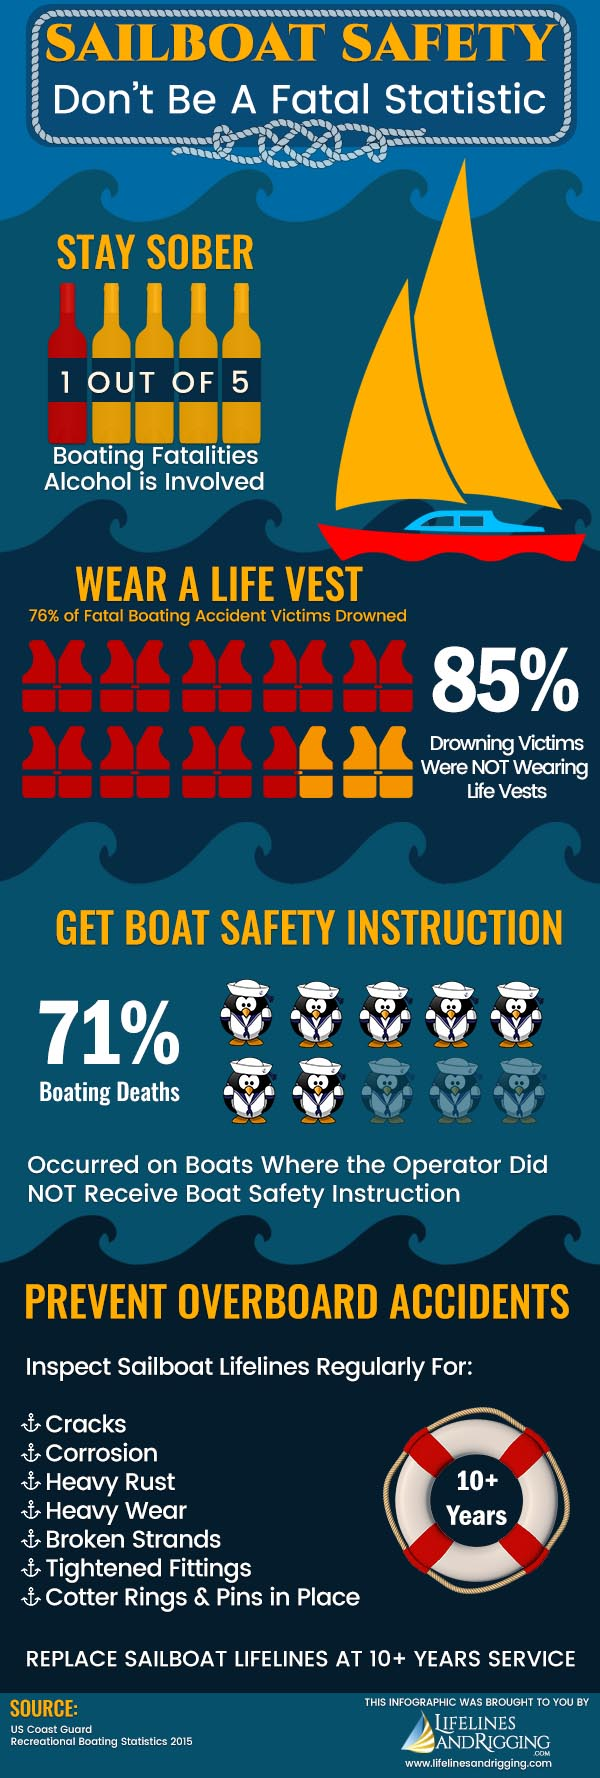 Sailboat Safety Tips Infographic Shows Statistics For Safe Boating